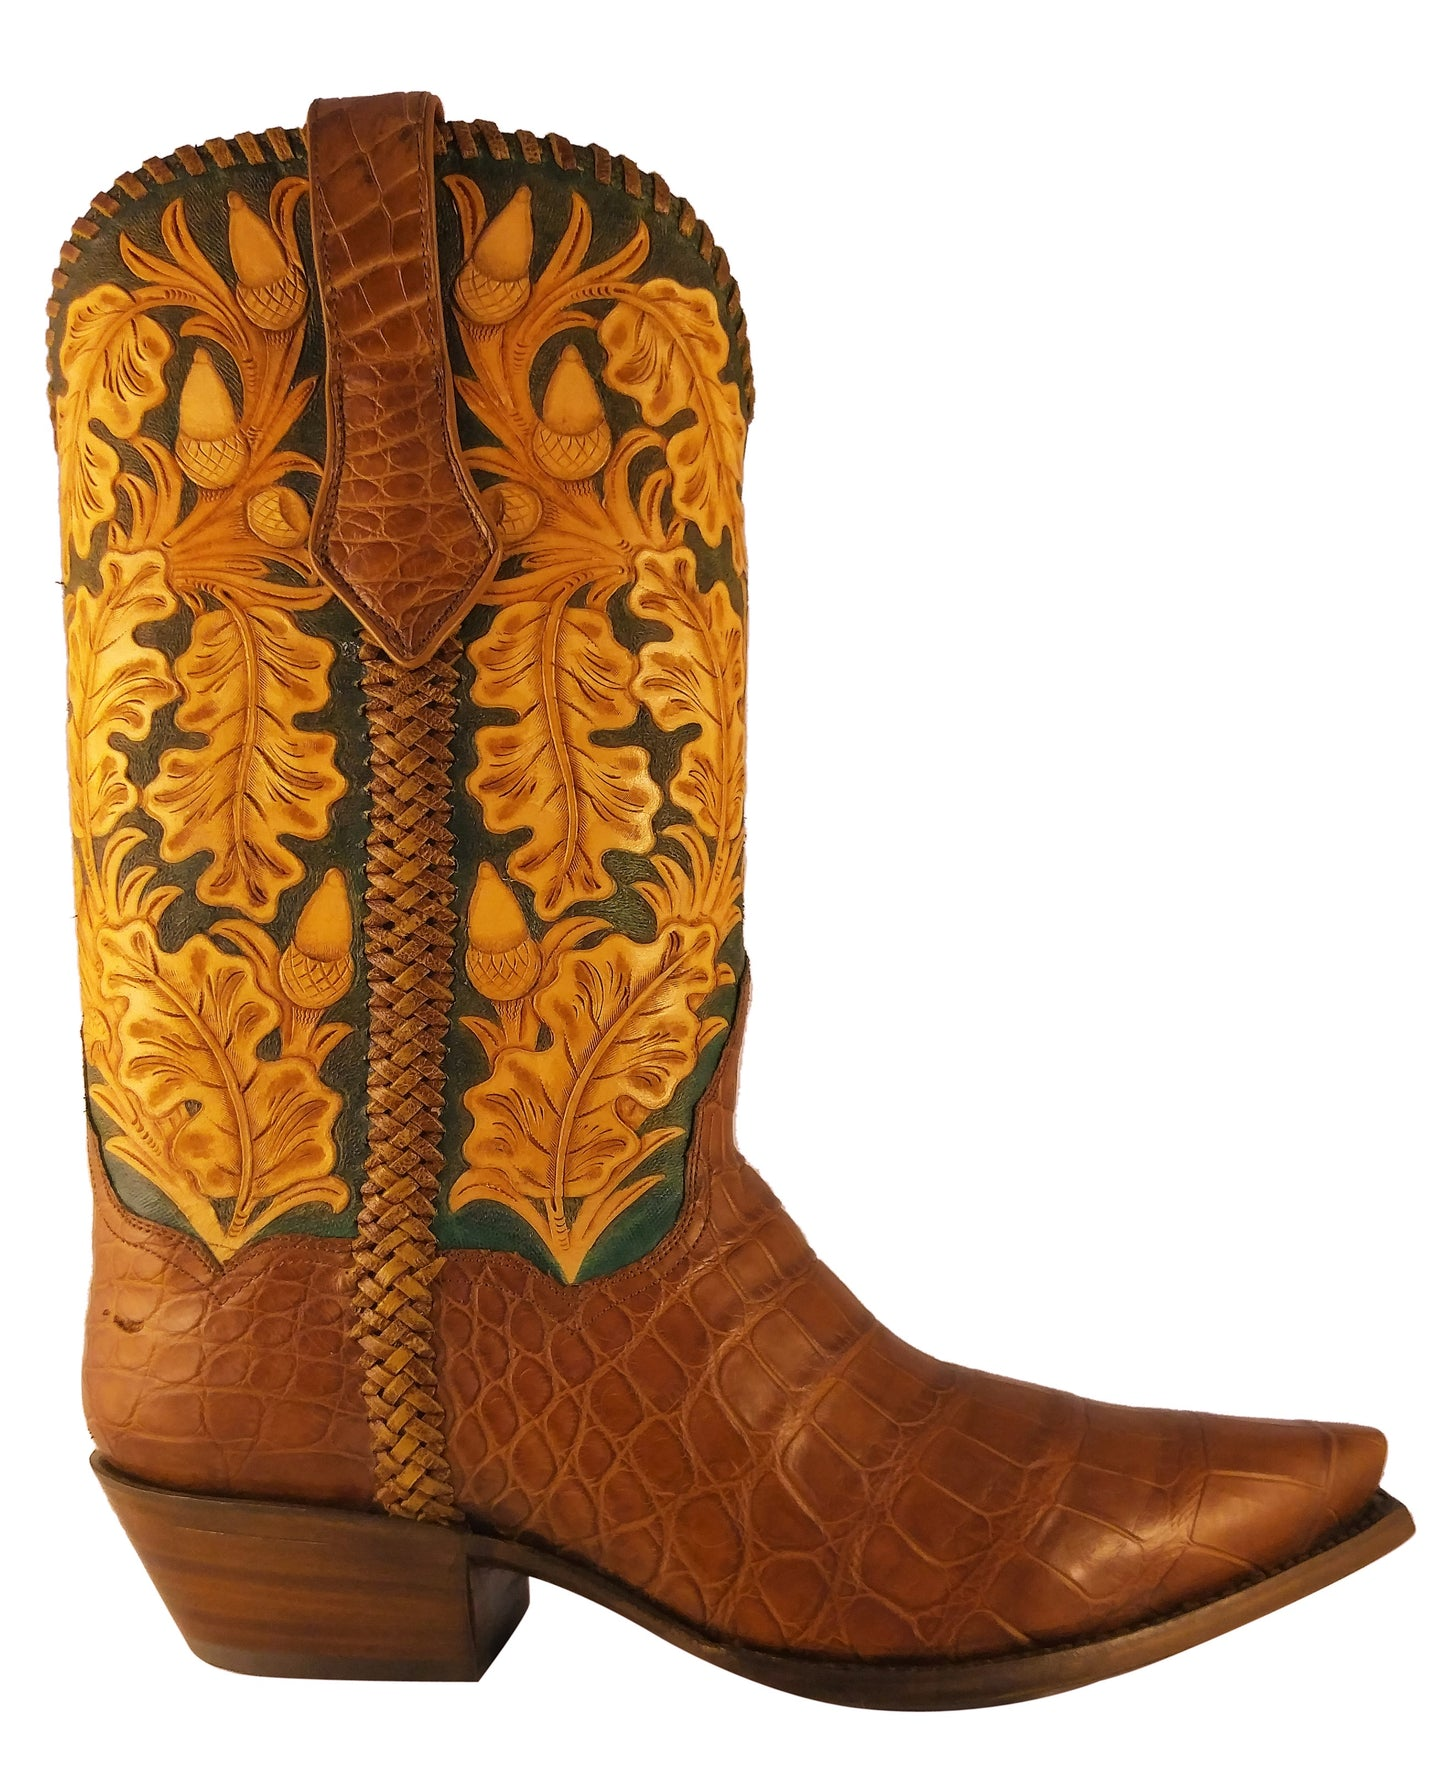 ARDITTI / RESLEY Limited Edition Genuine American Alligator Hand Carved Autumn Acorns Handmade Boots